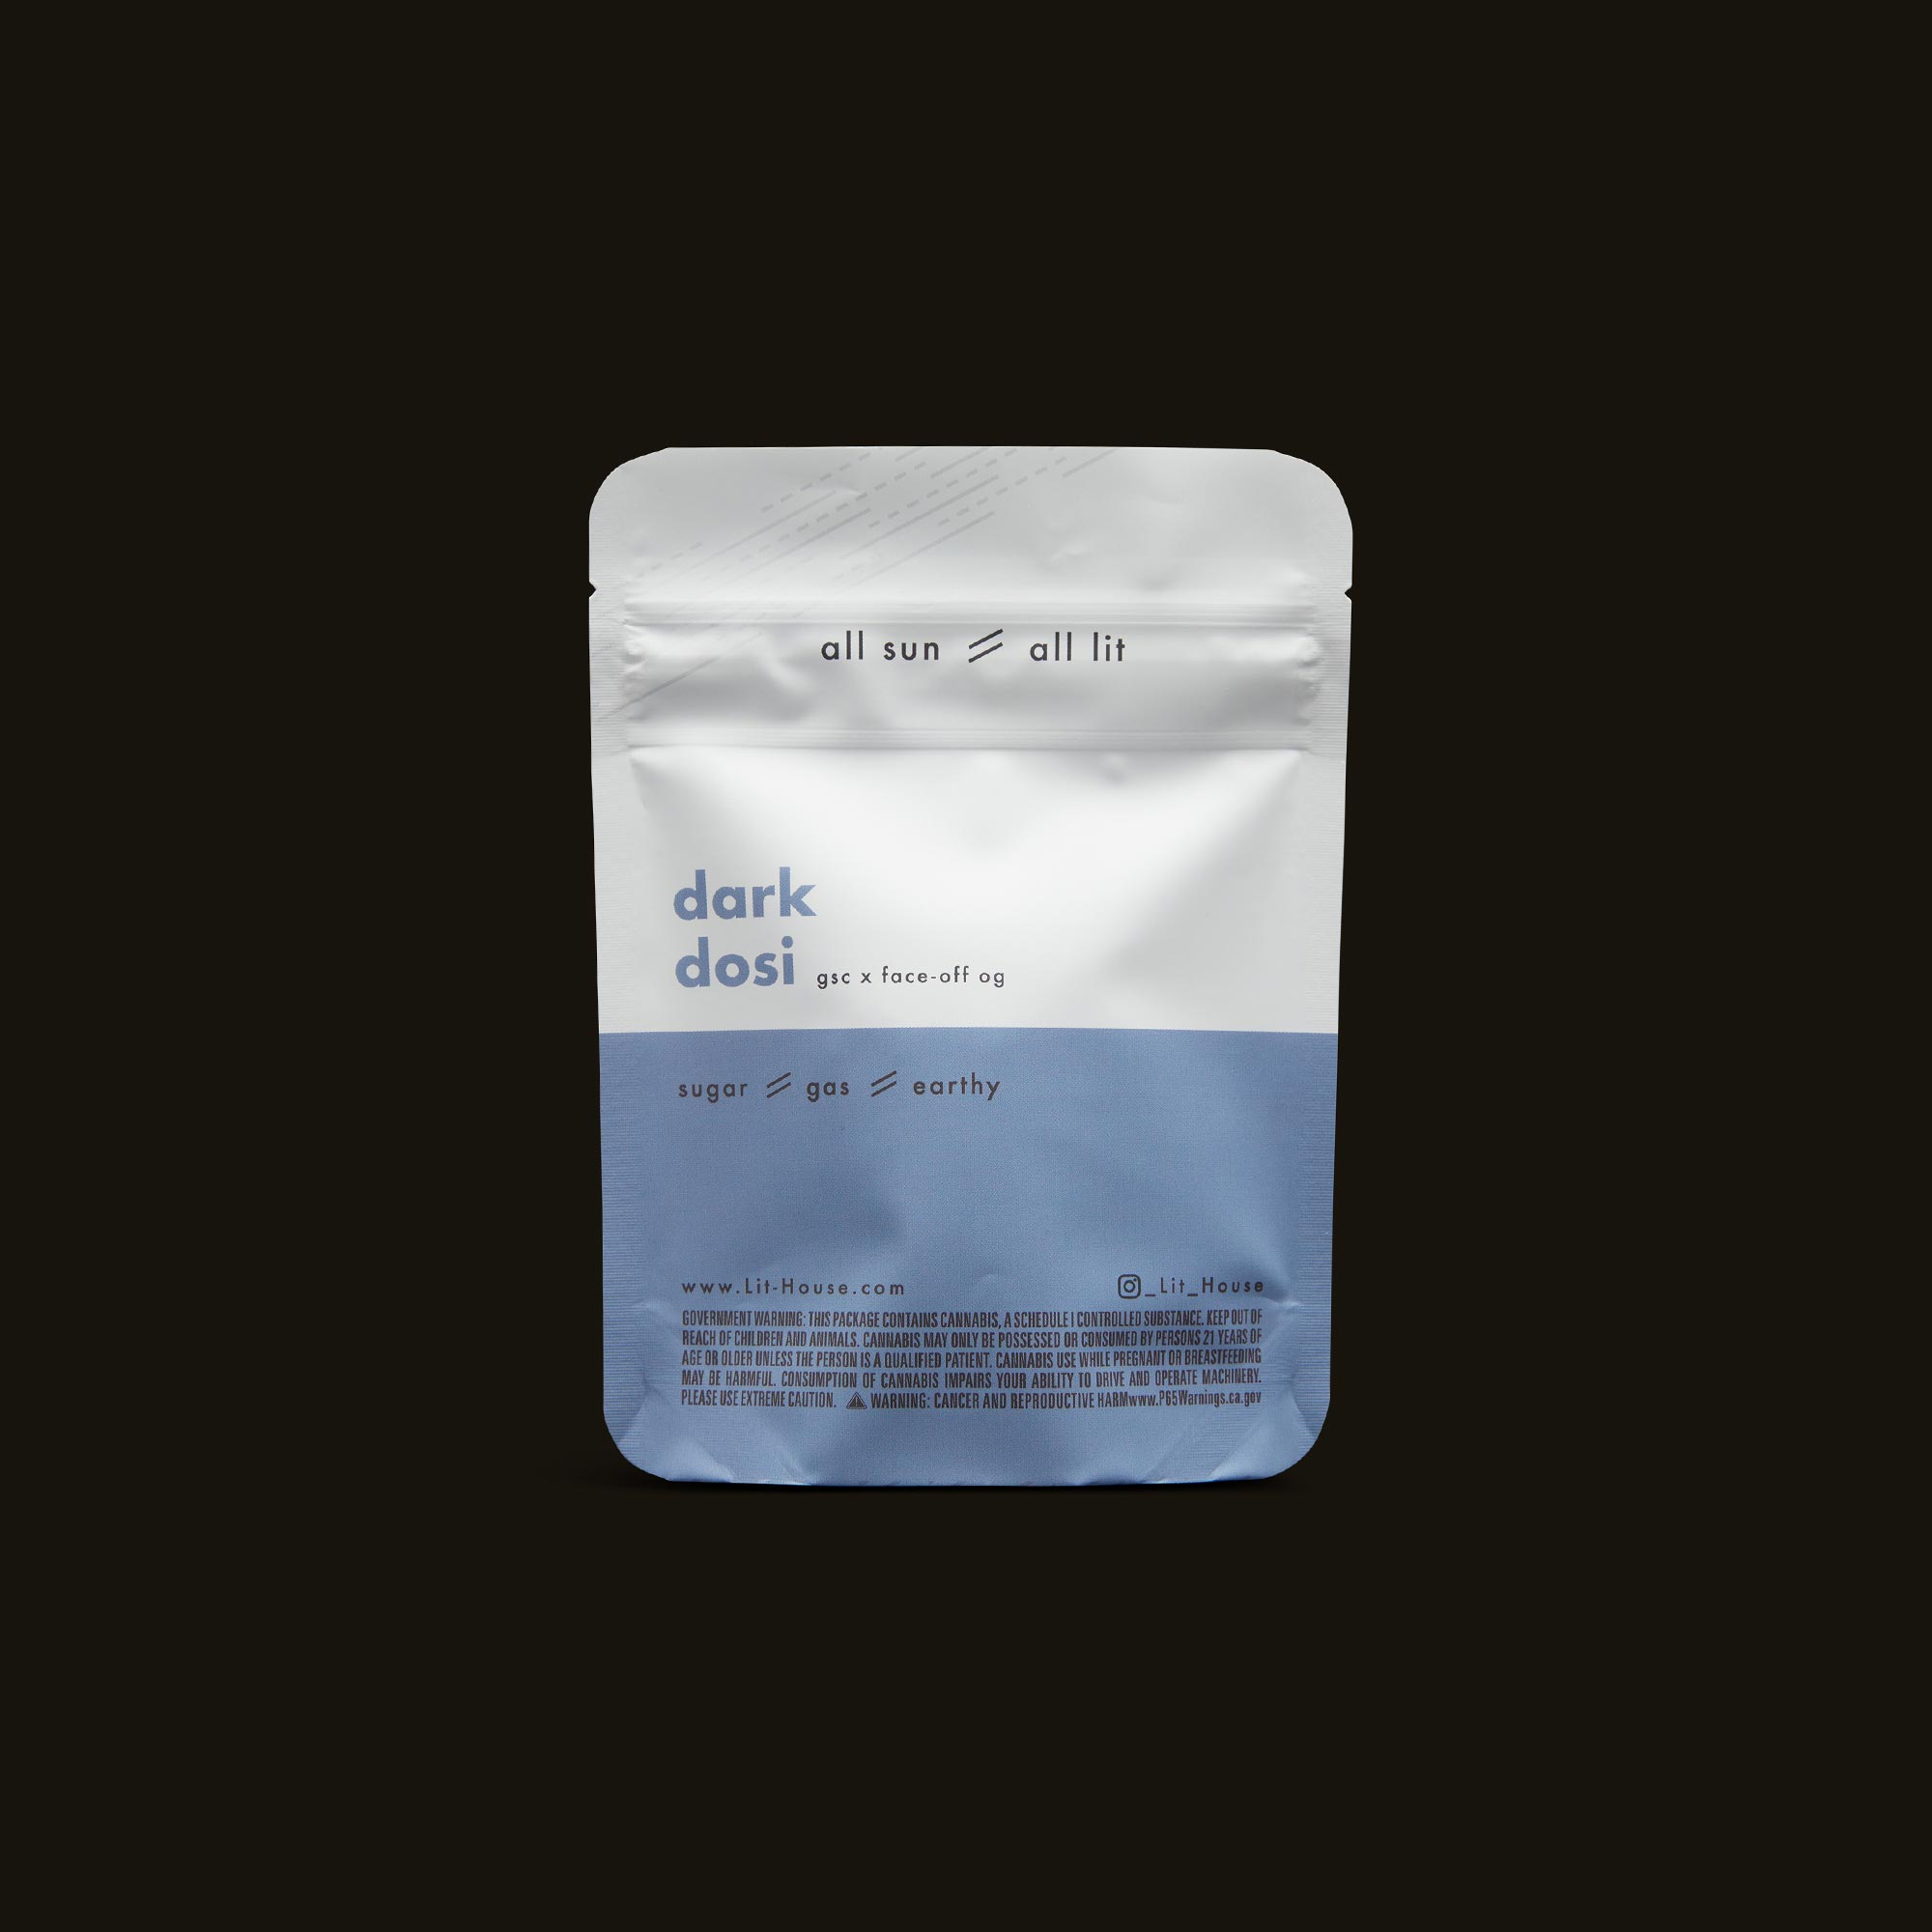 LitHouse All Sun - Dark Dosi Back Packaging